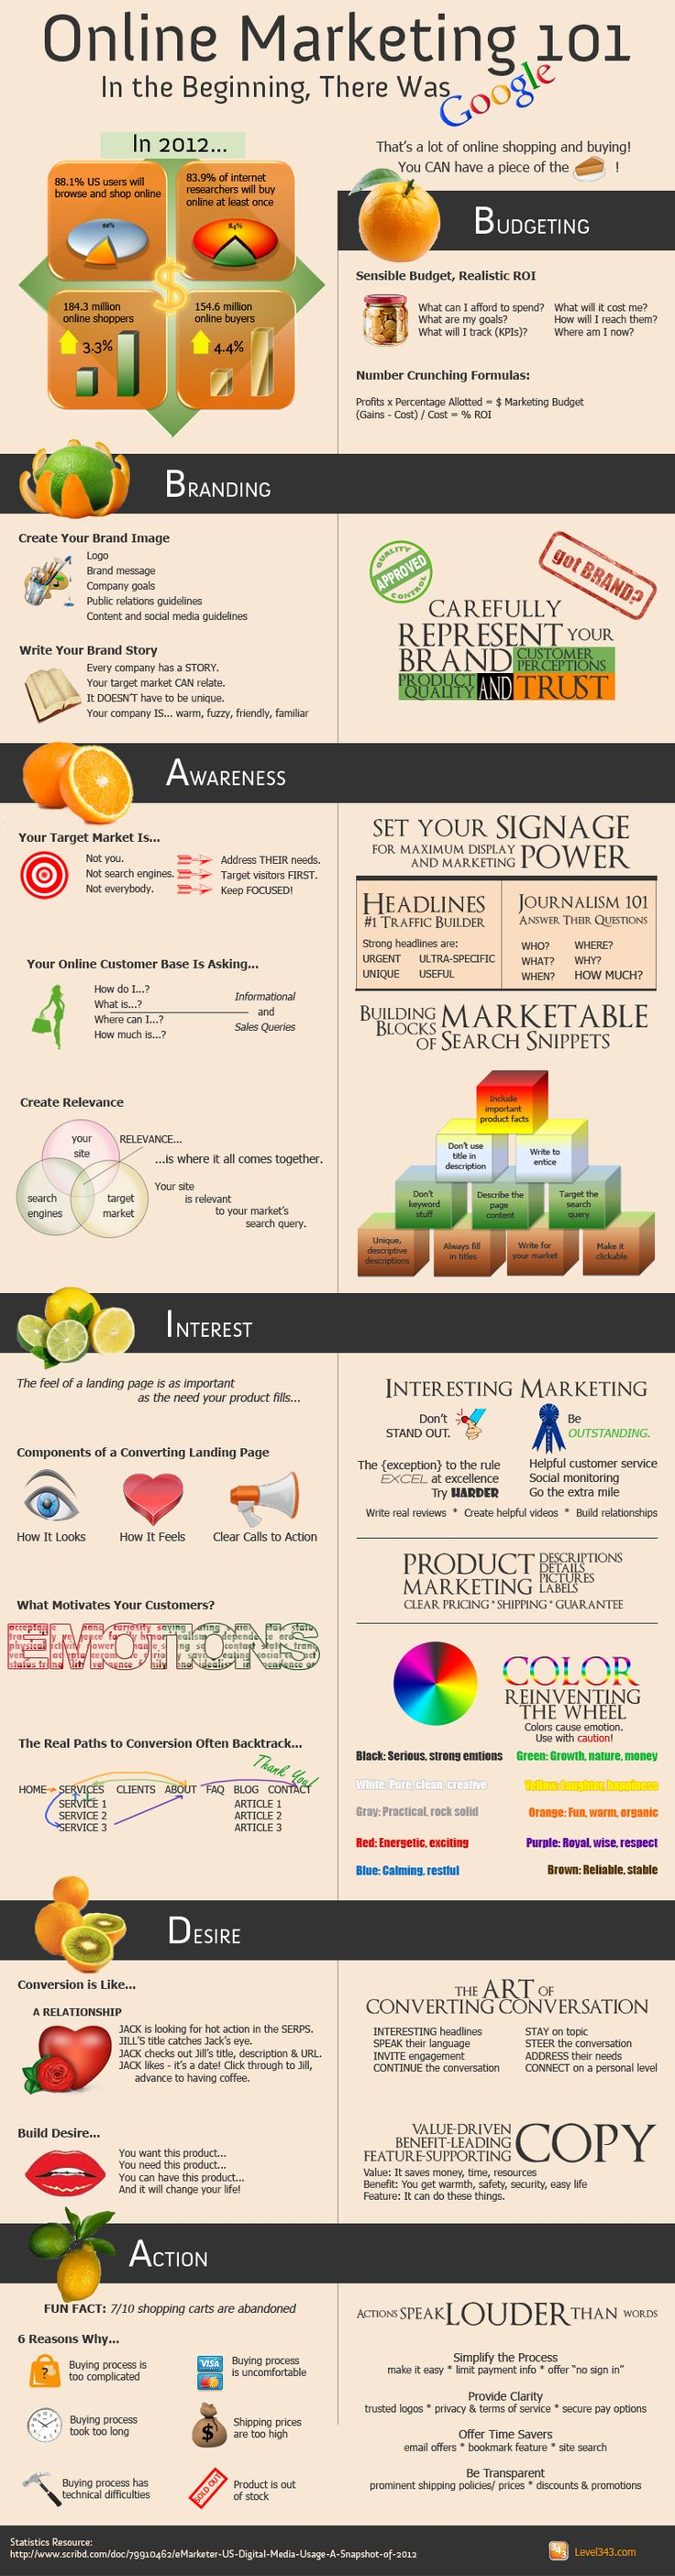 101 Online Marketing Guides and Strategies from Google [Infographic]